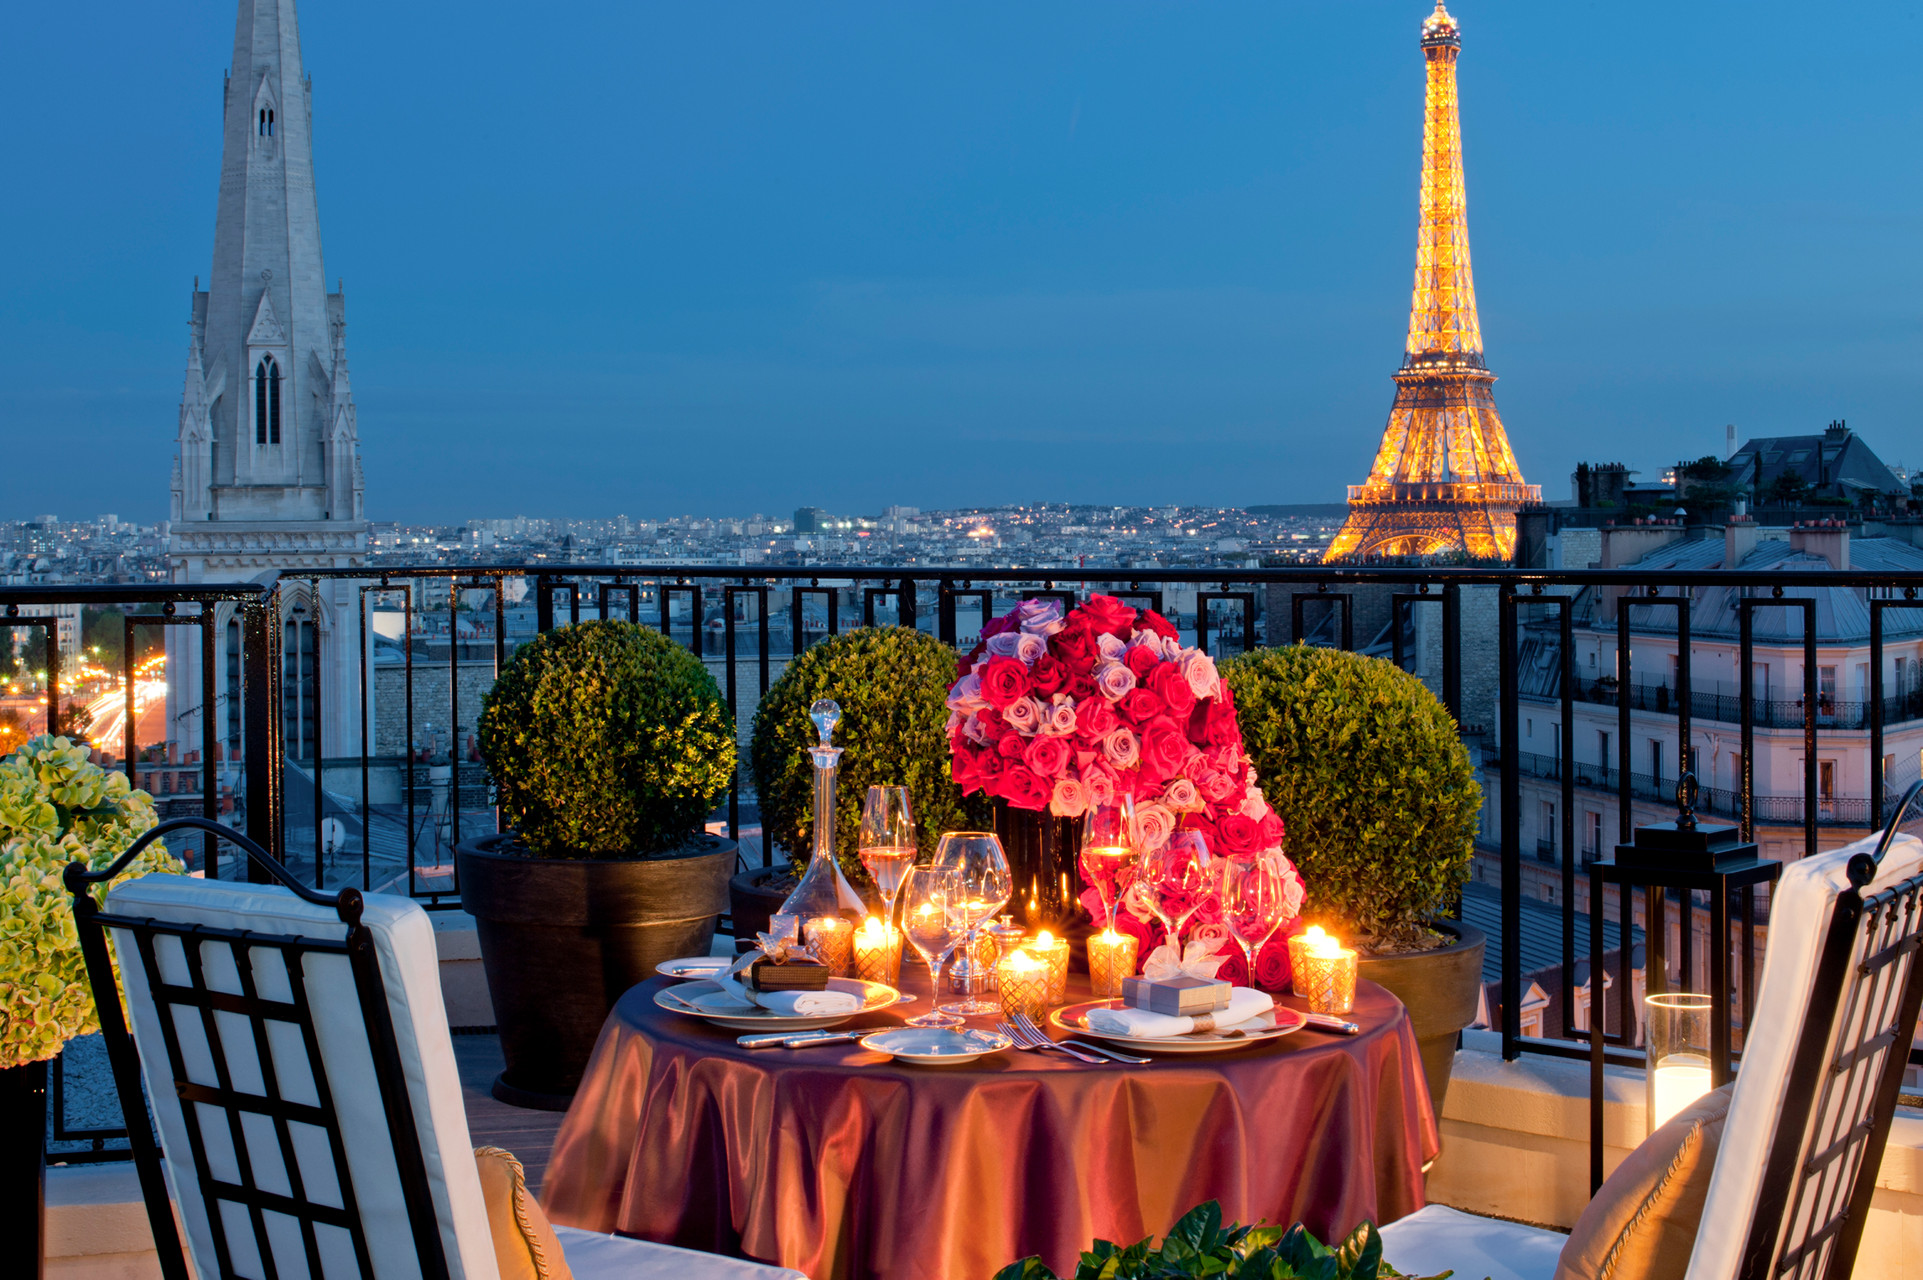 Luxury Travel: 5 Reasons Why Paris Should Be Your Next Destination Best Hotels in France The Best Hotels in France You Need To Stay In luxury travel reasons why paris next destination valentines day Best Hotels in France The Best Hotels in France You Need To Stay In luxury travel reasons why paris next destination valentines day